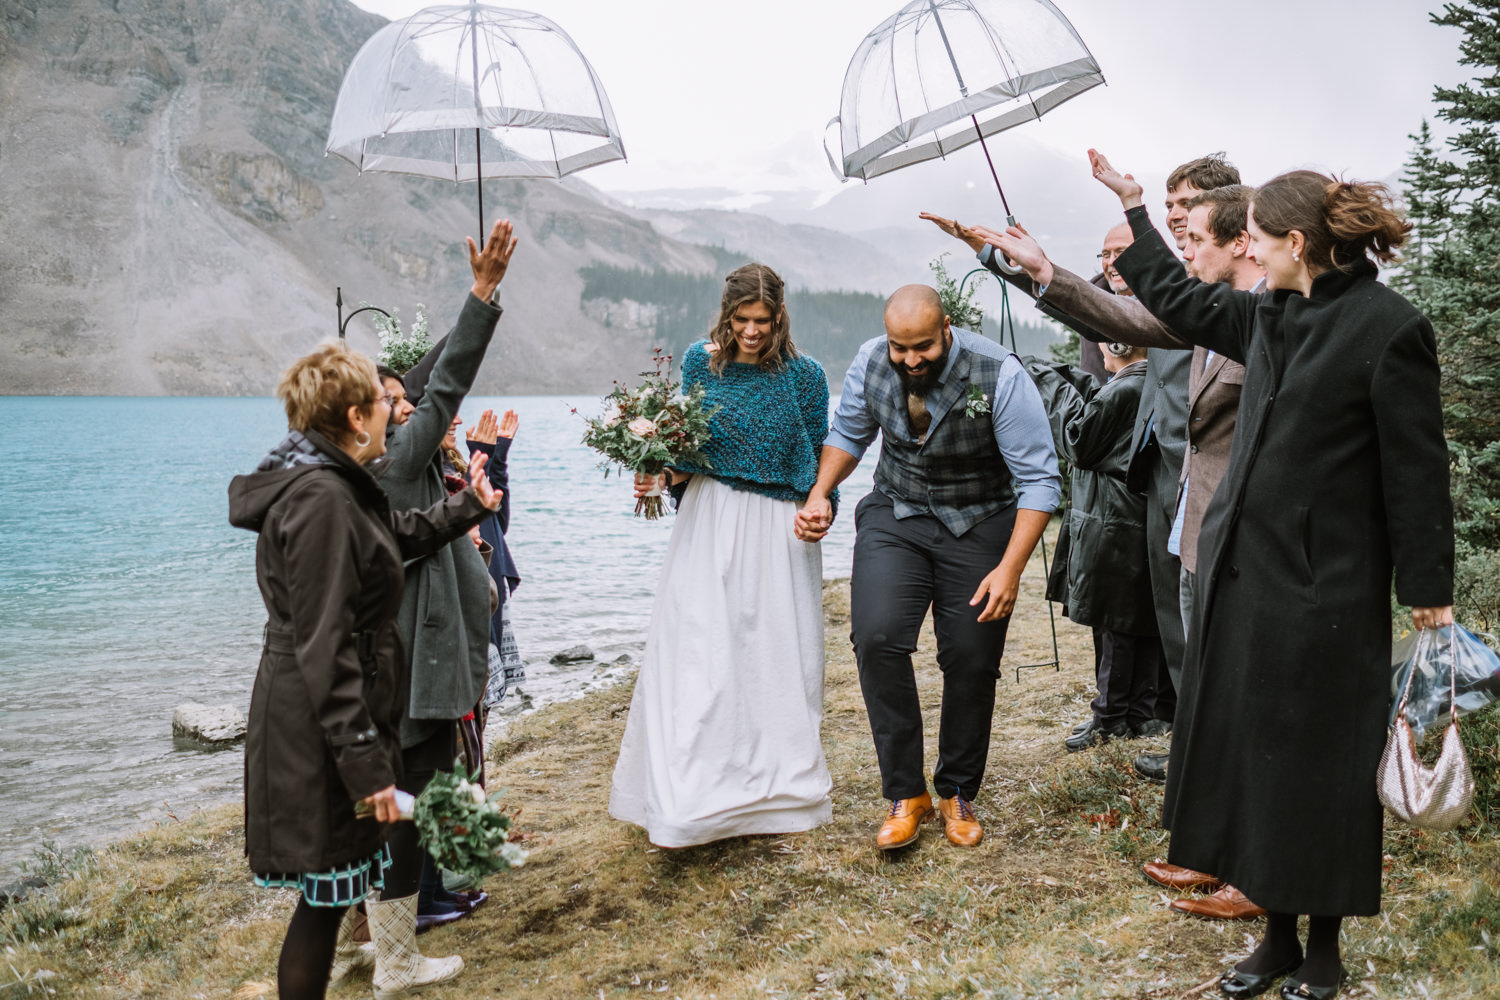 banff-wedding-photographer-packages-10039